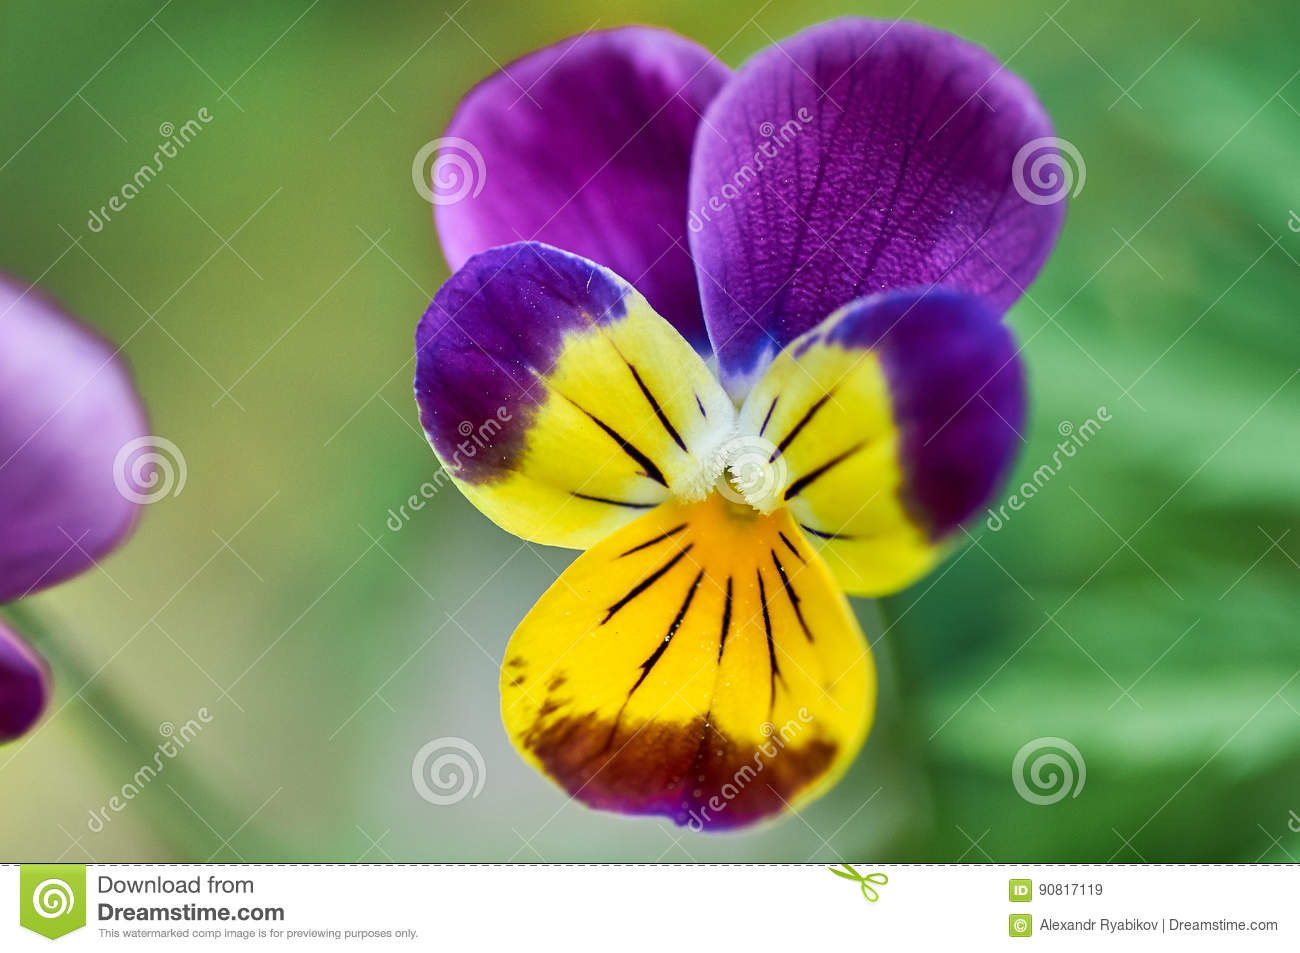 Anuta eyes in the garden violet flower stock image image of download anuta eyes in the garden violet flower stock image image of fresh thecheapjerseys Image collections